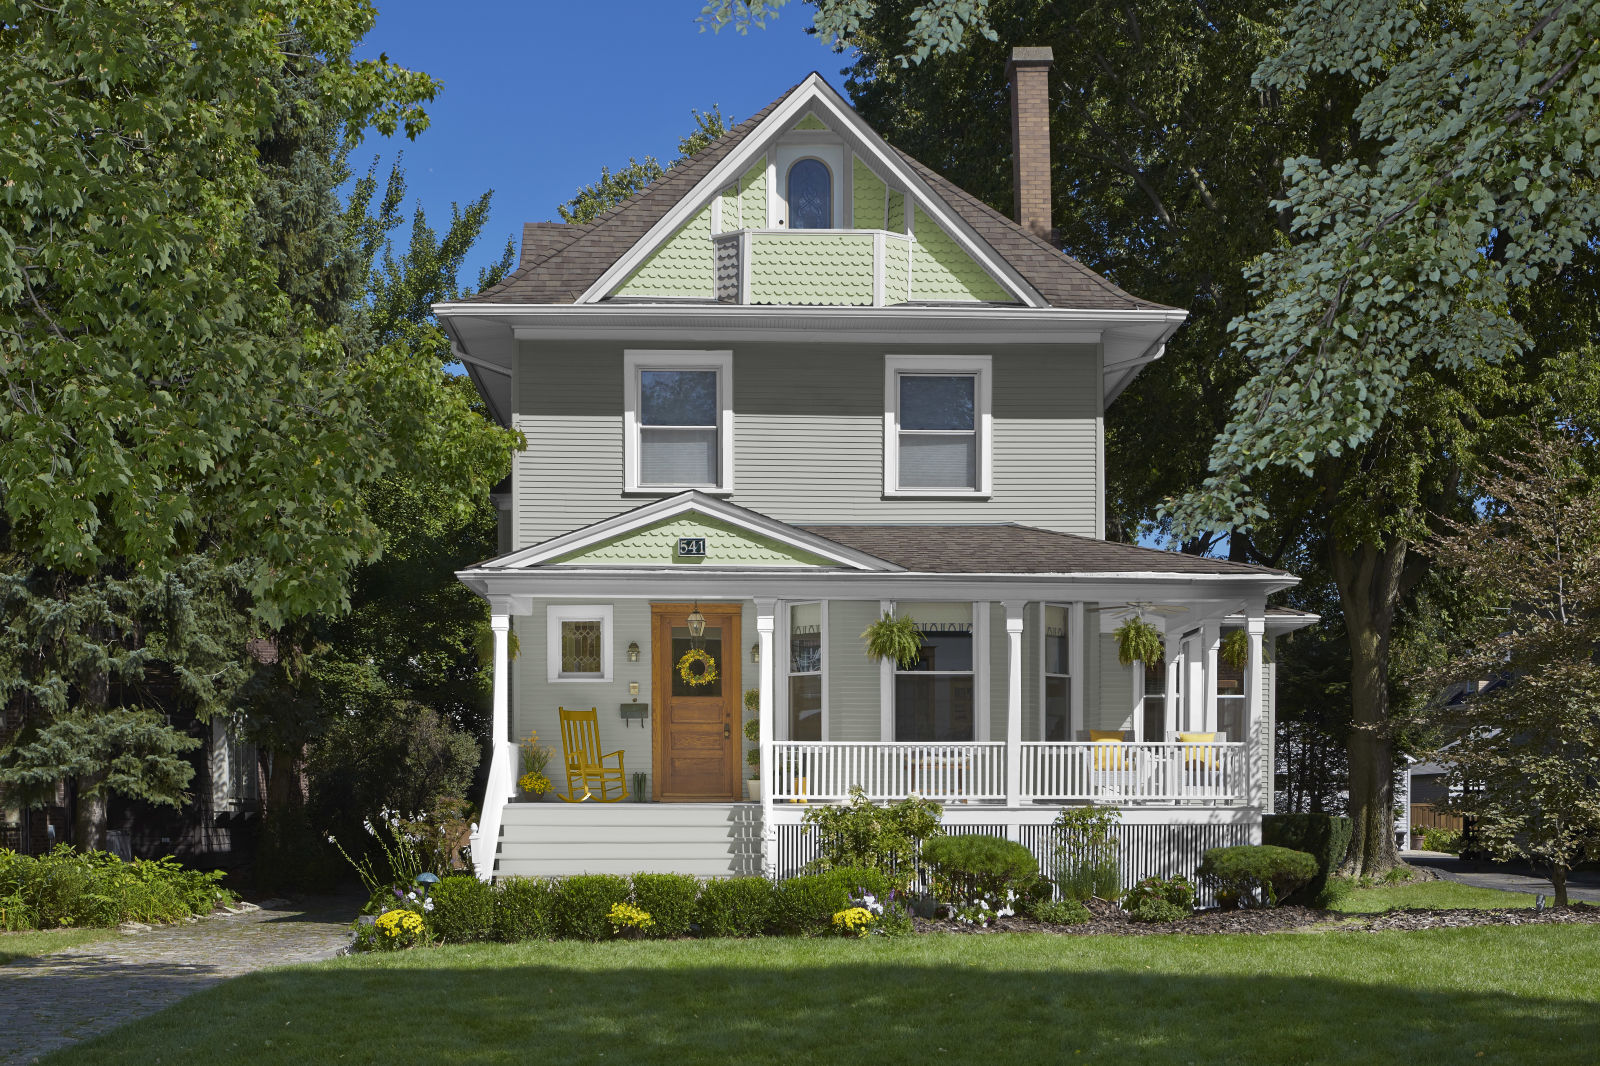 5 Best Home Exterior Paint Colors For Spring What Colors To Paint A House